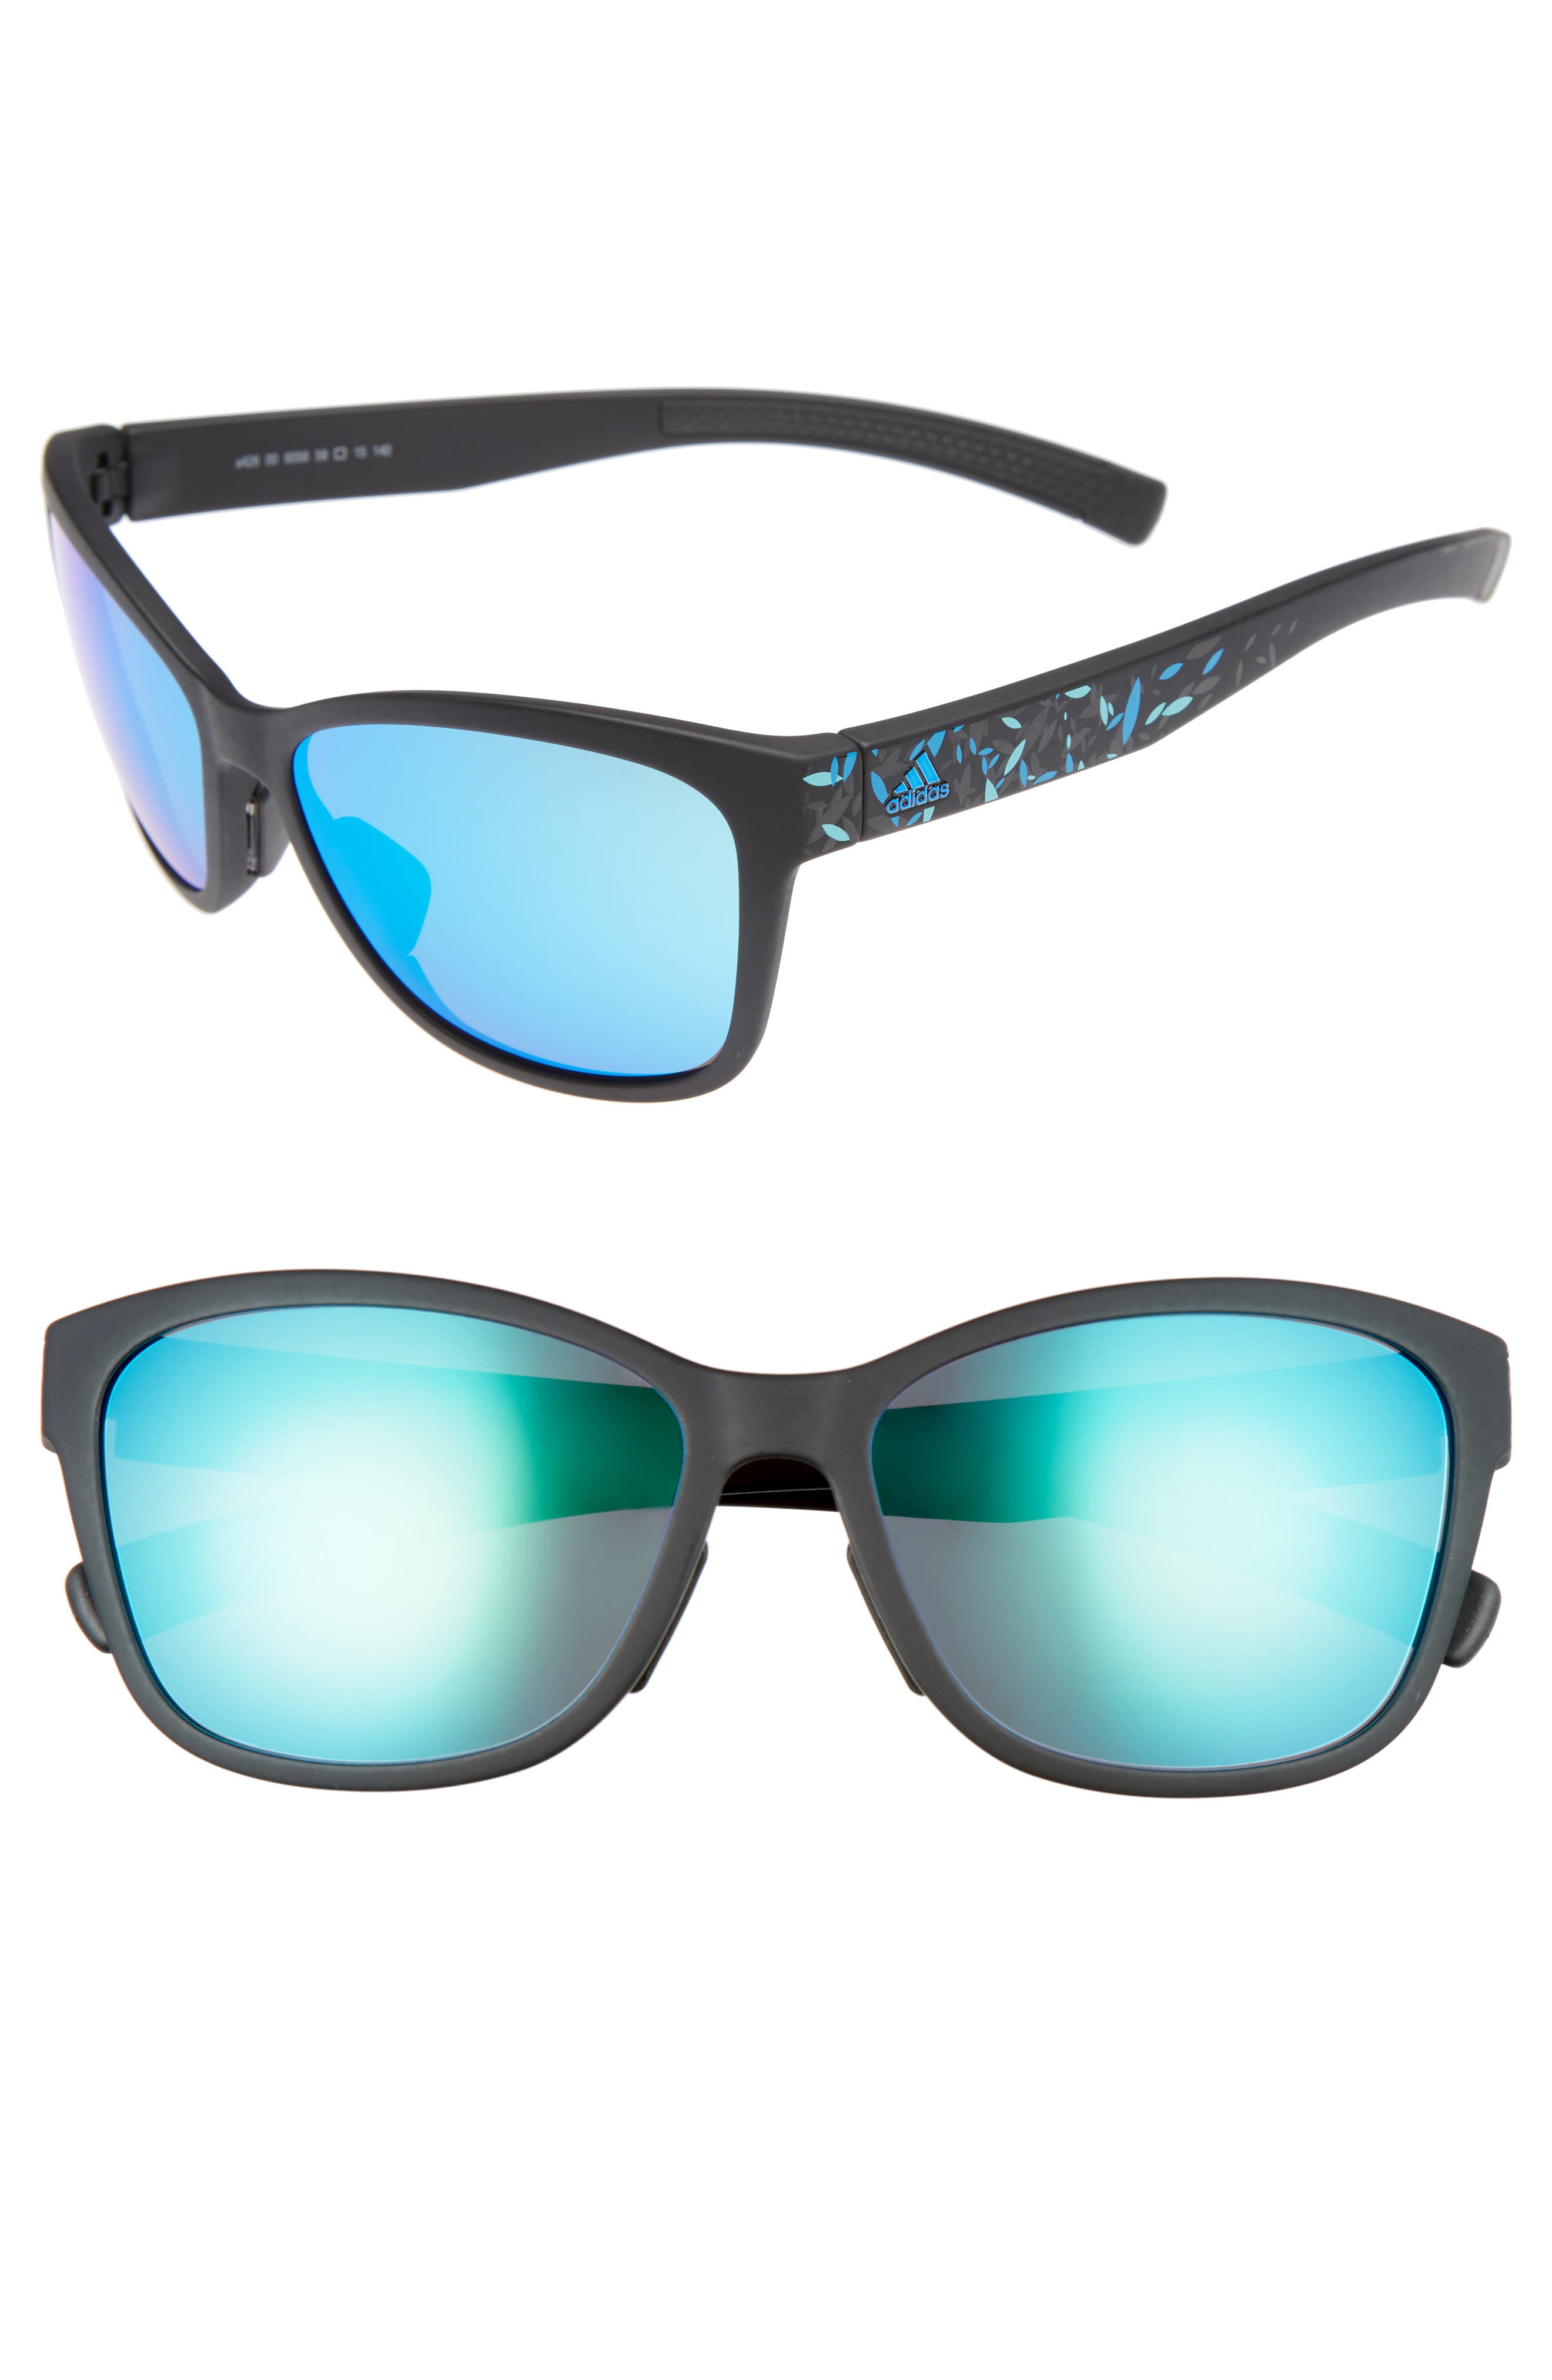 Main Image - adidas Excalate 58mm Mirrored Sunglasses